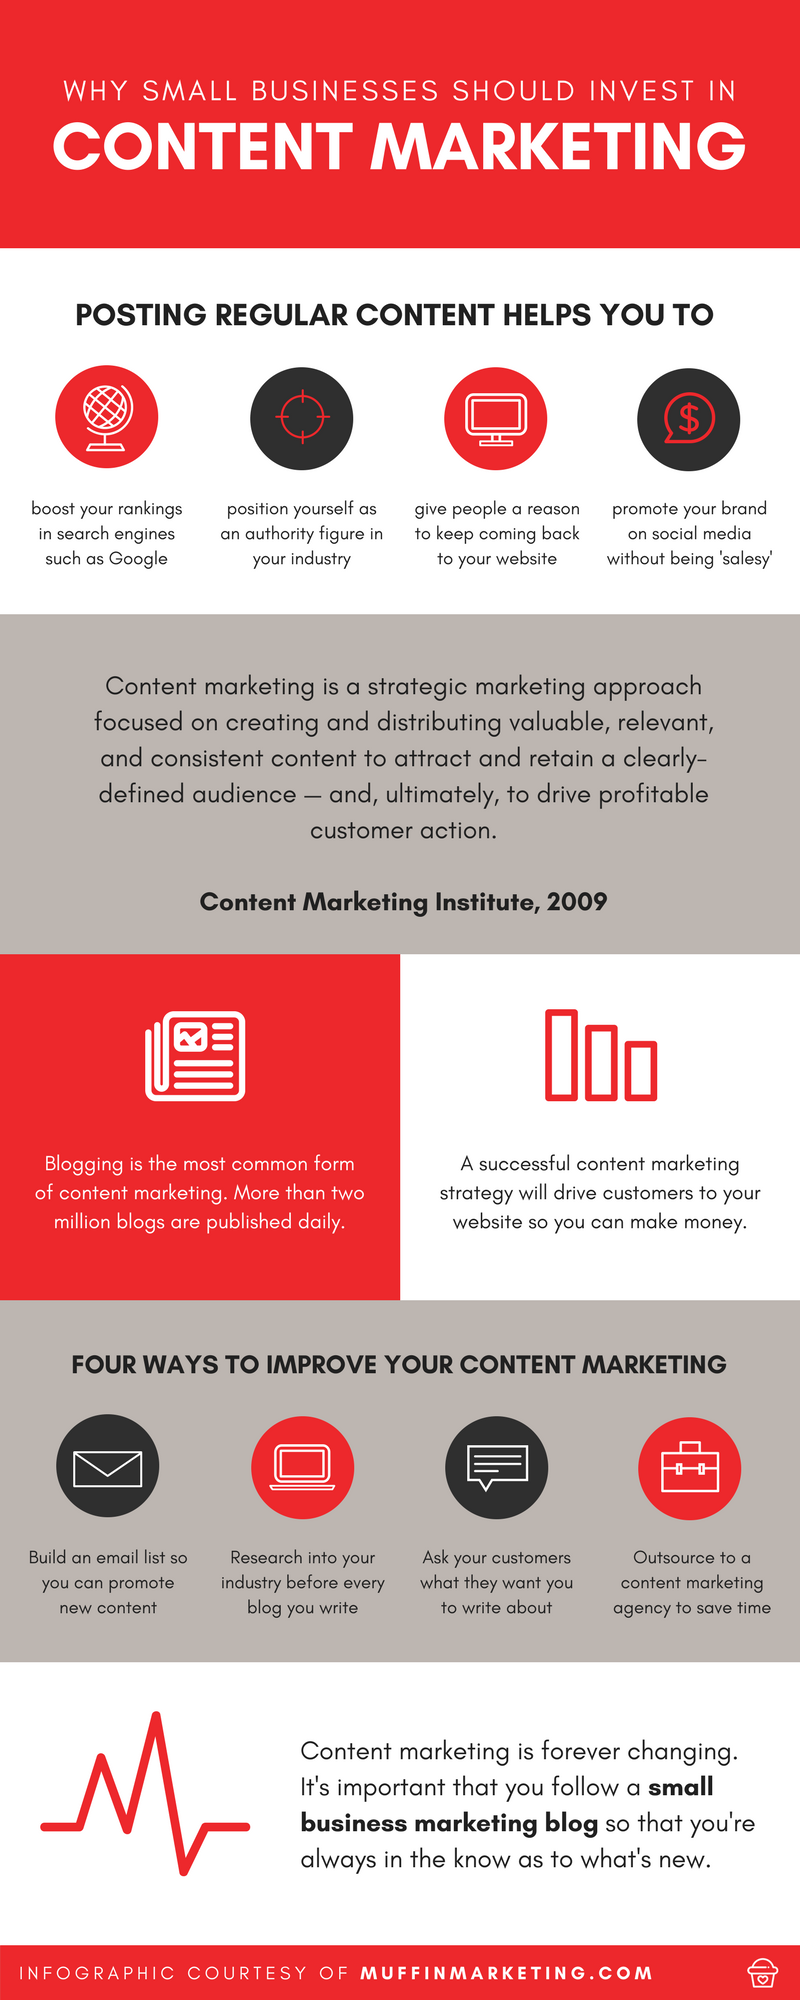 The benefits of content marketing for small businesses infographic from Muffin Marketing